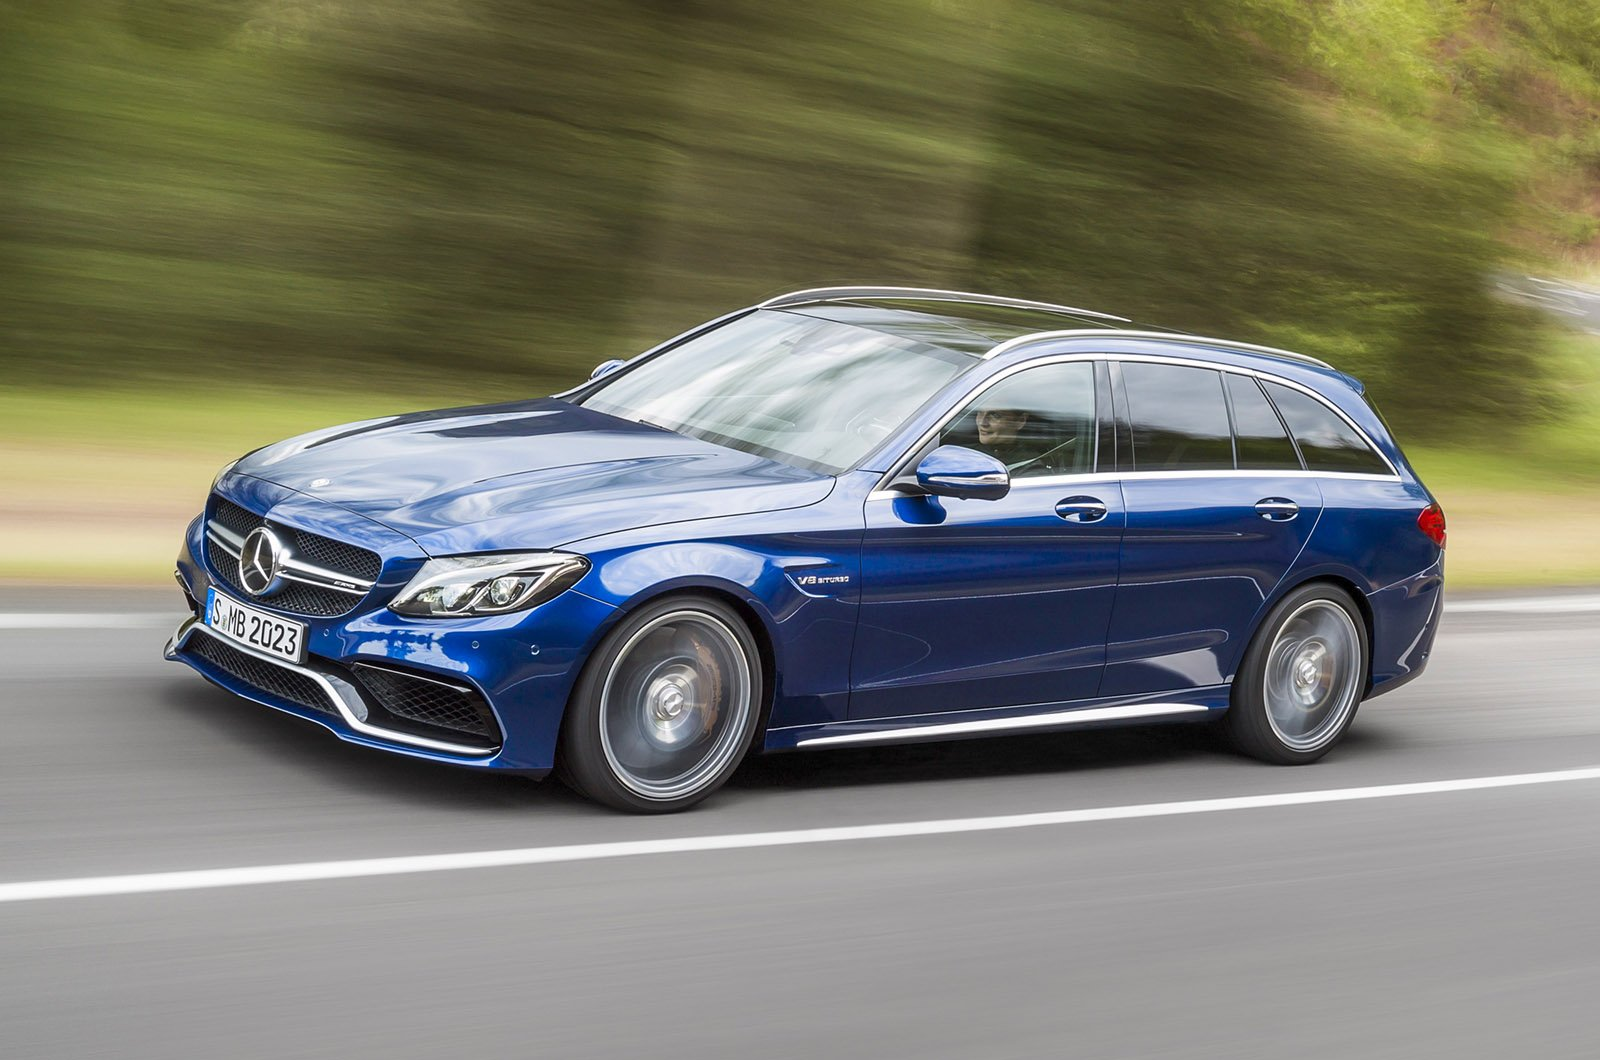 Mercedes benz c63 amg station wagon 2015 blue wallpaper for Mercedes benz sport wagon